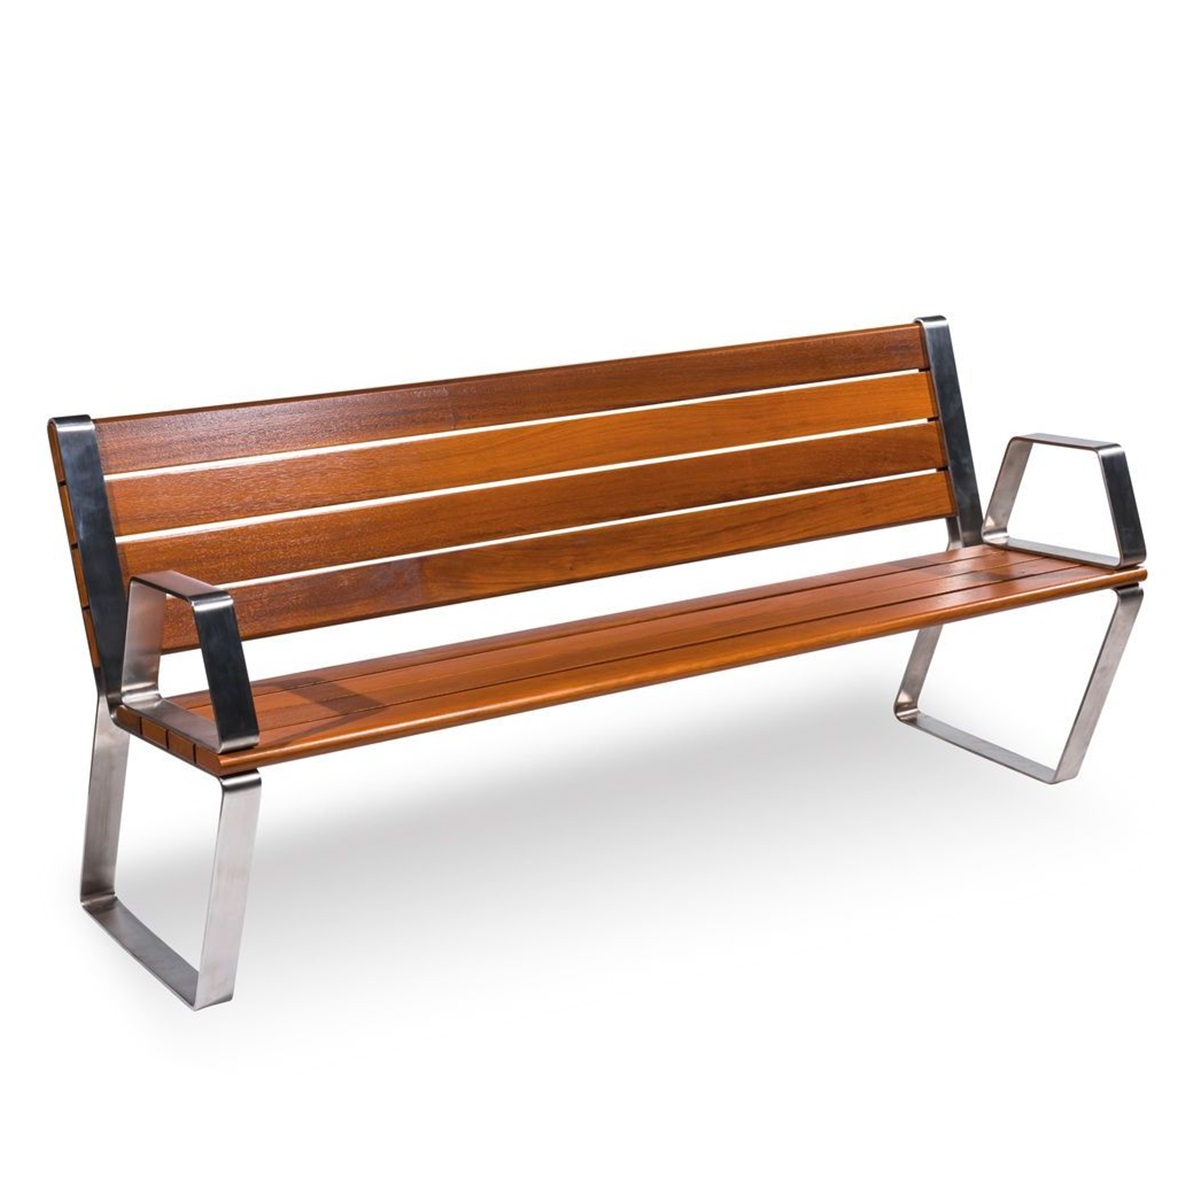 Marina Bench C-1006-MAR